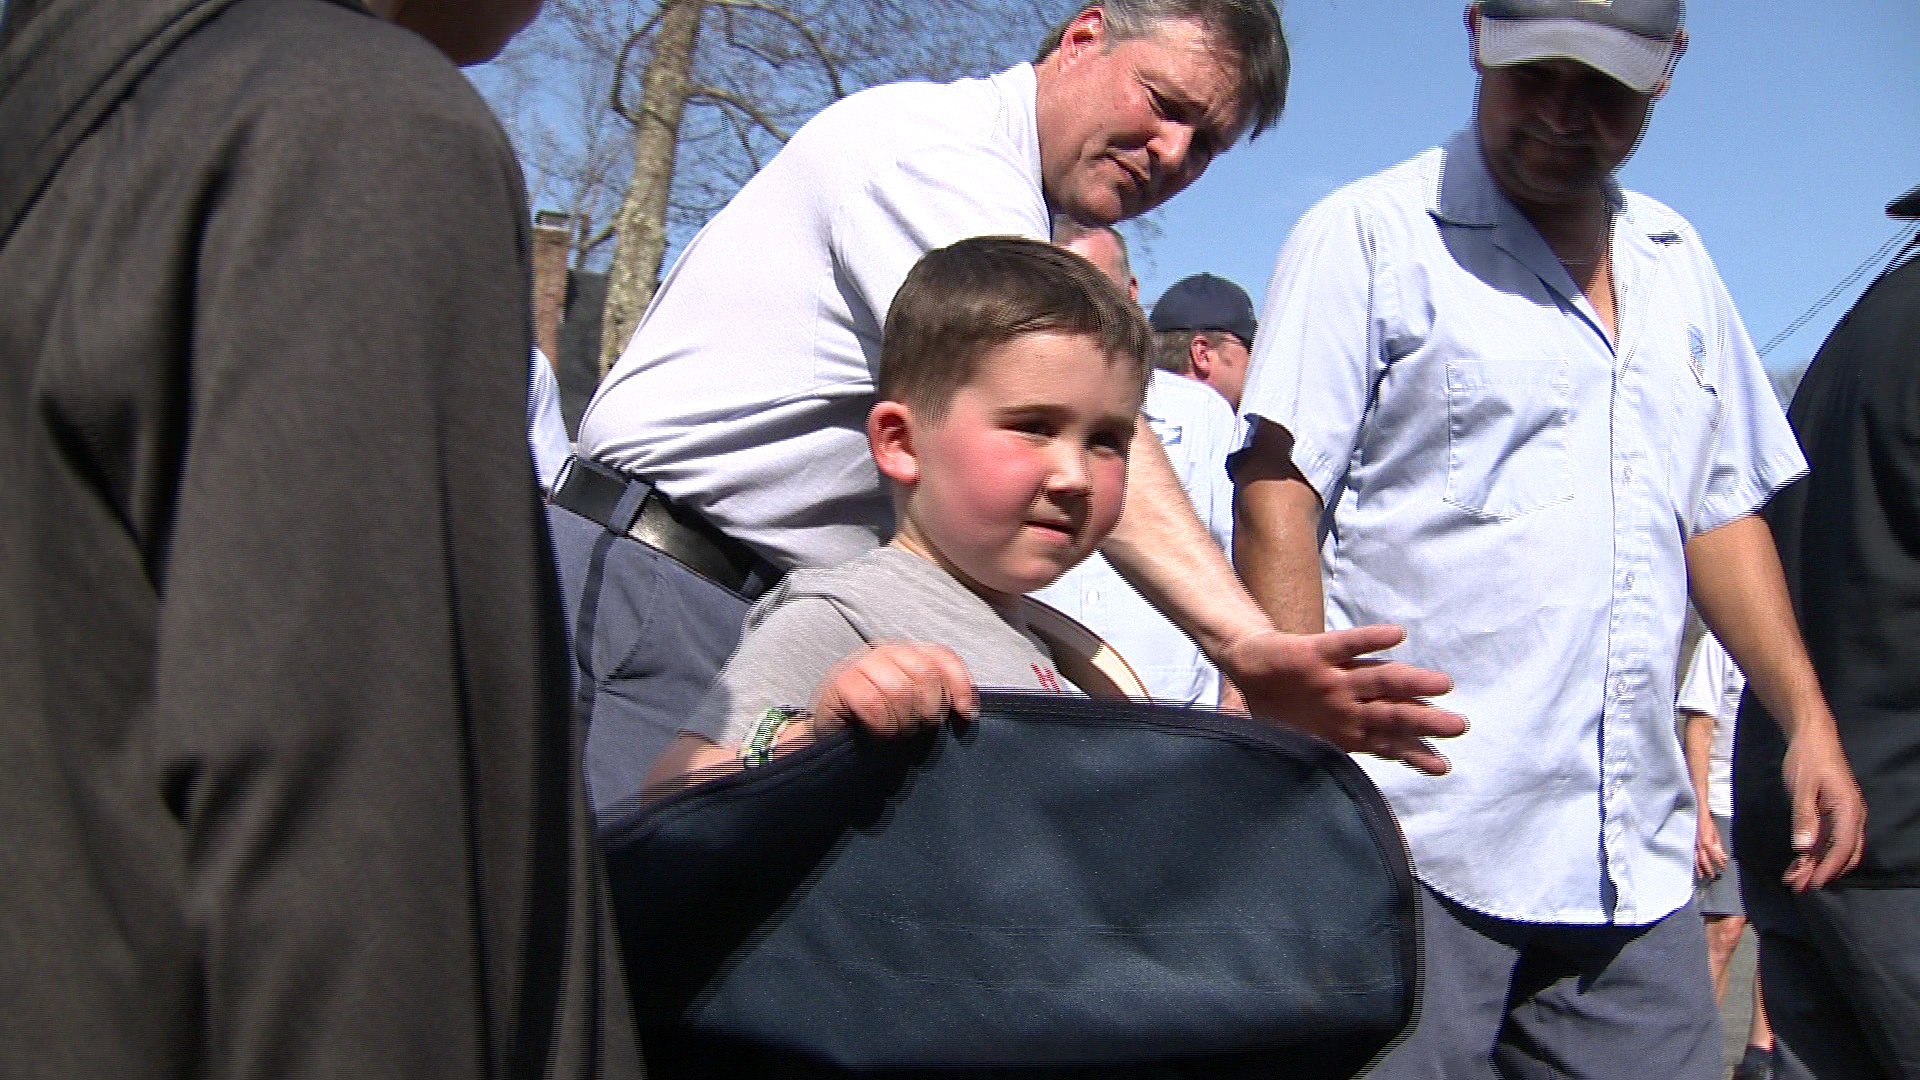 boy with brain tumor gets Convoy